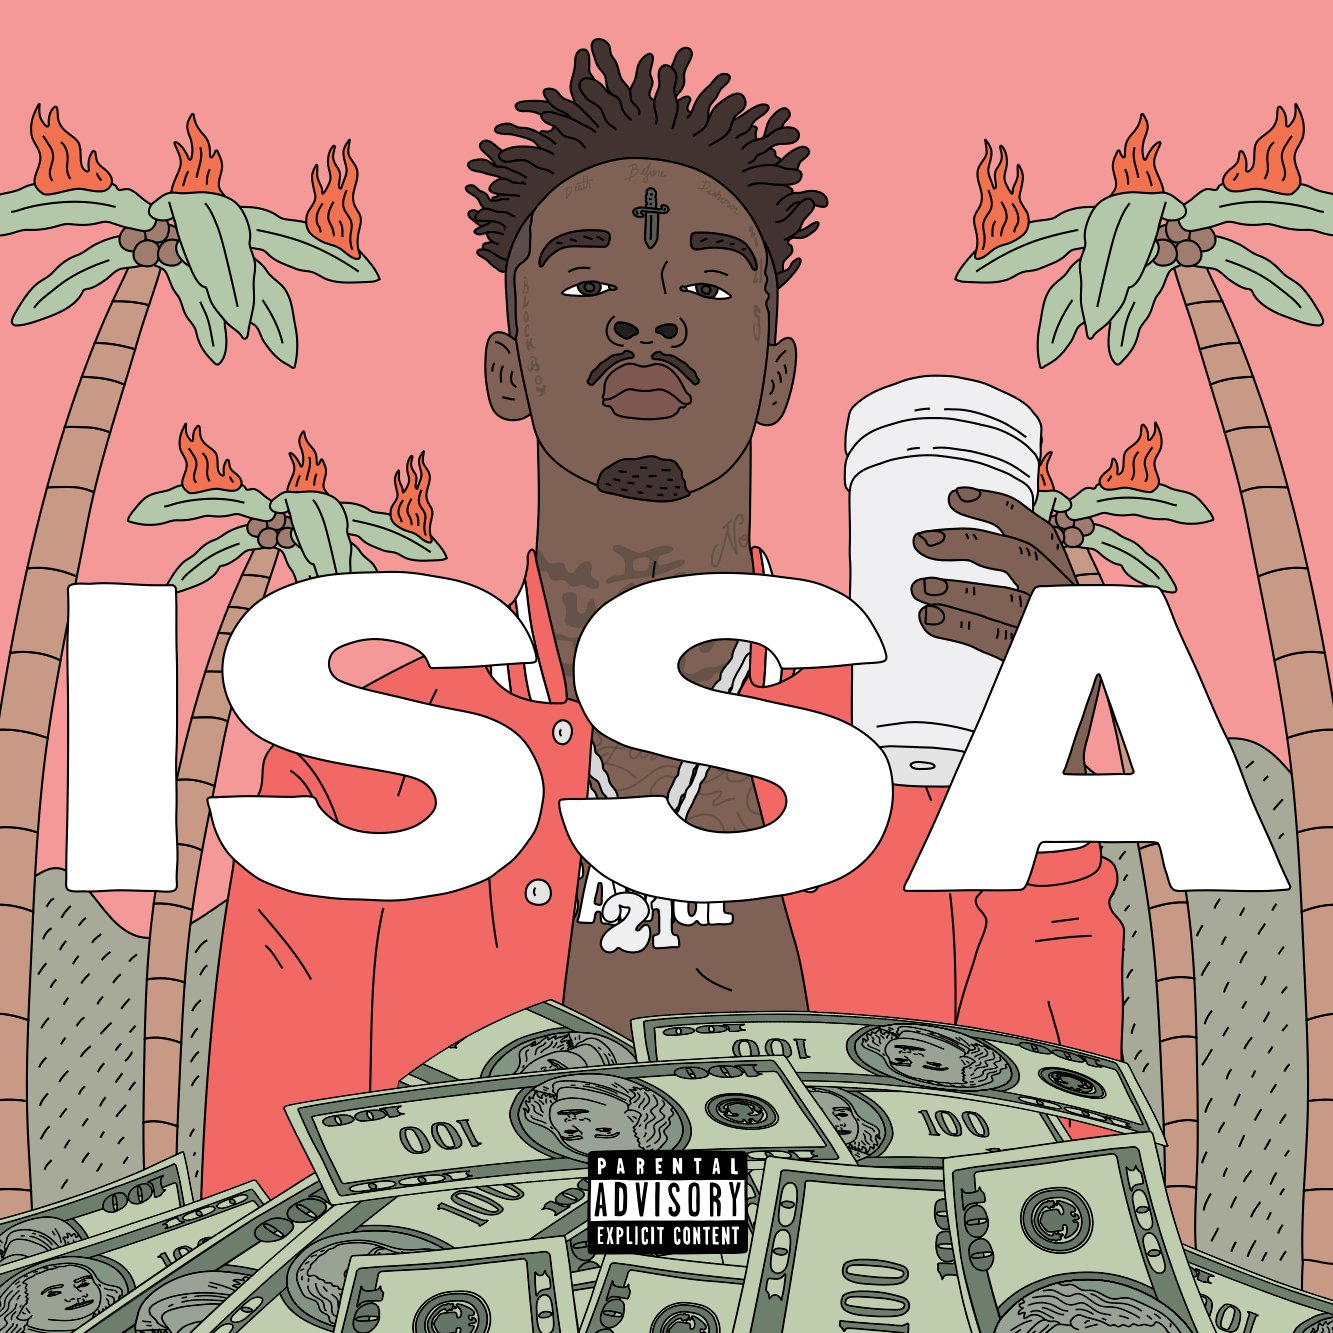 3f90194f02b97 21 SAVAGE RELEASES DEBUT ALBUM ISSA ALBUM EVERYWHERE TODAY - Epic ...